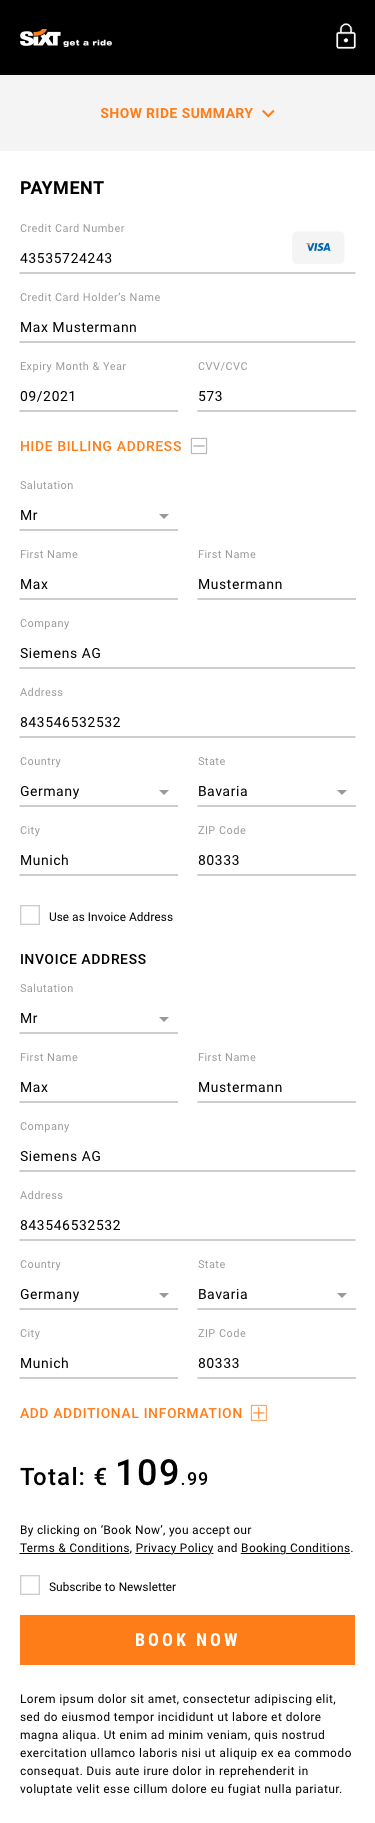 38 Invoice Address.Mobile 2.Logged Out